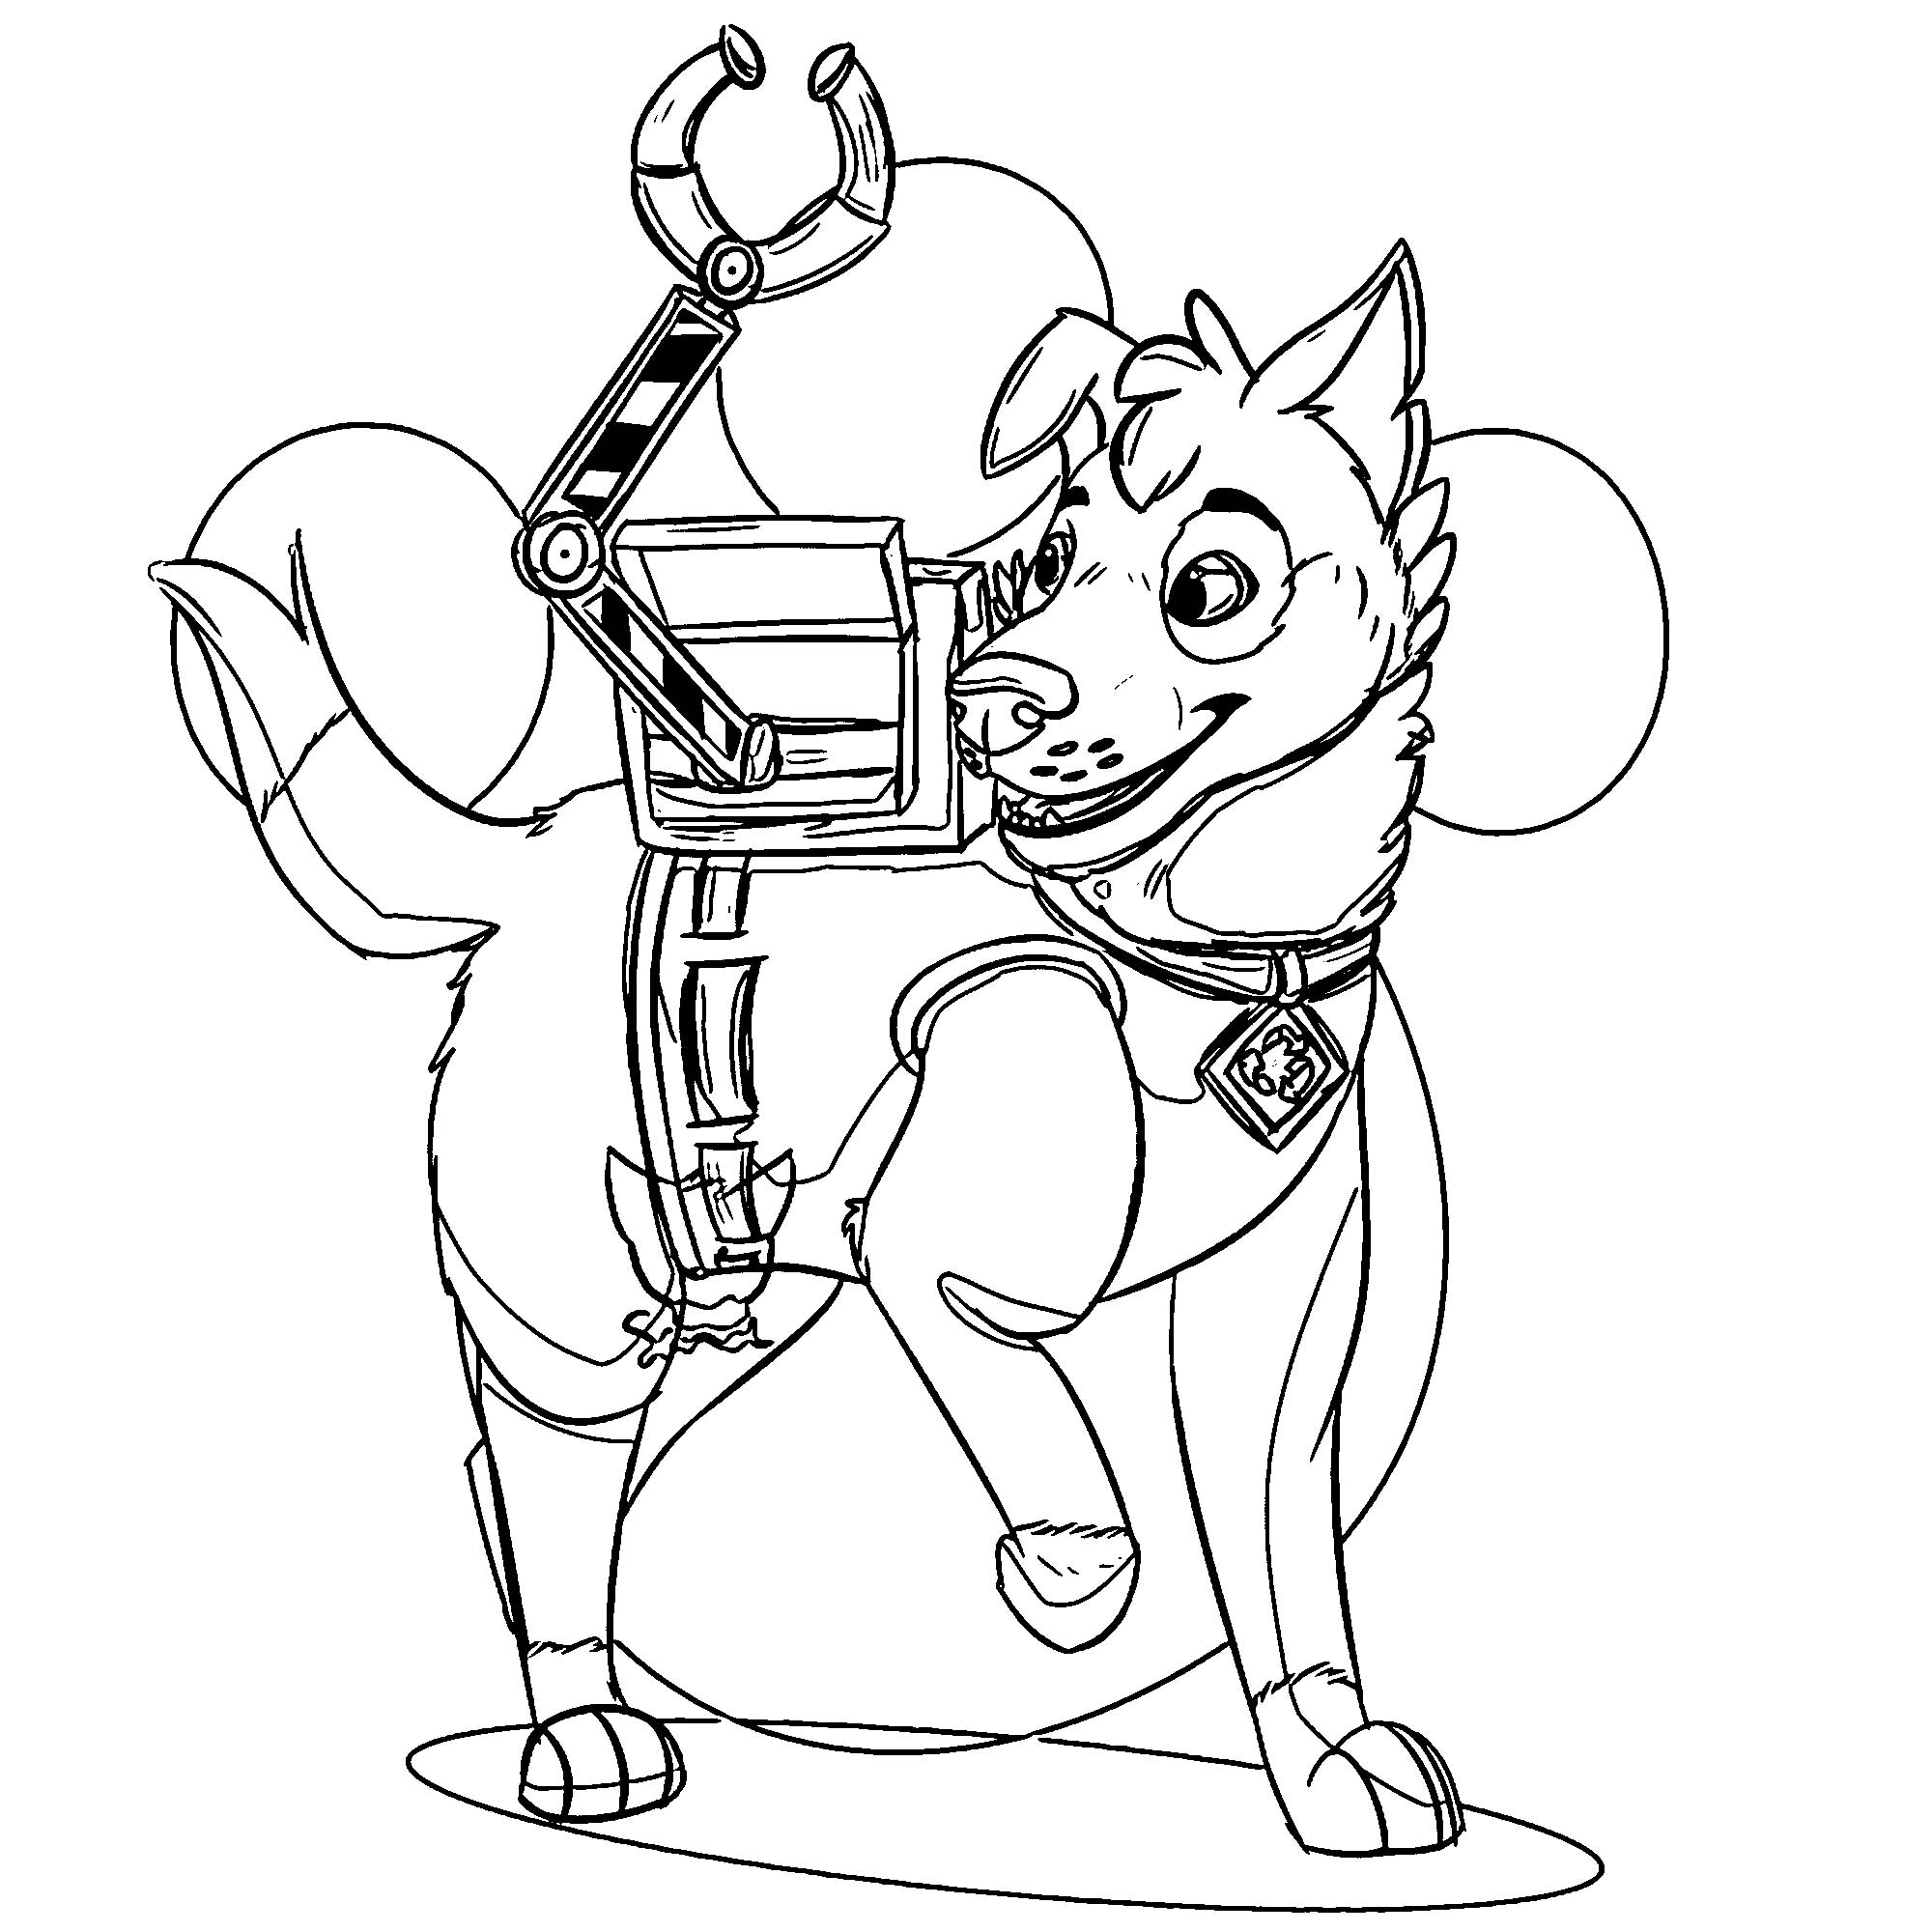 Tumblr Nmabolrutknpo Coloring Page